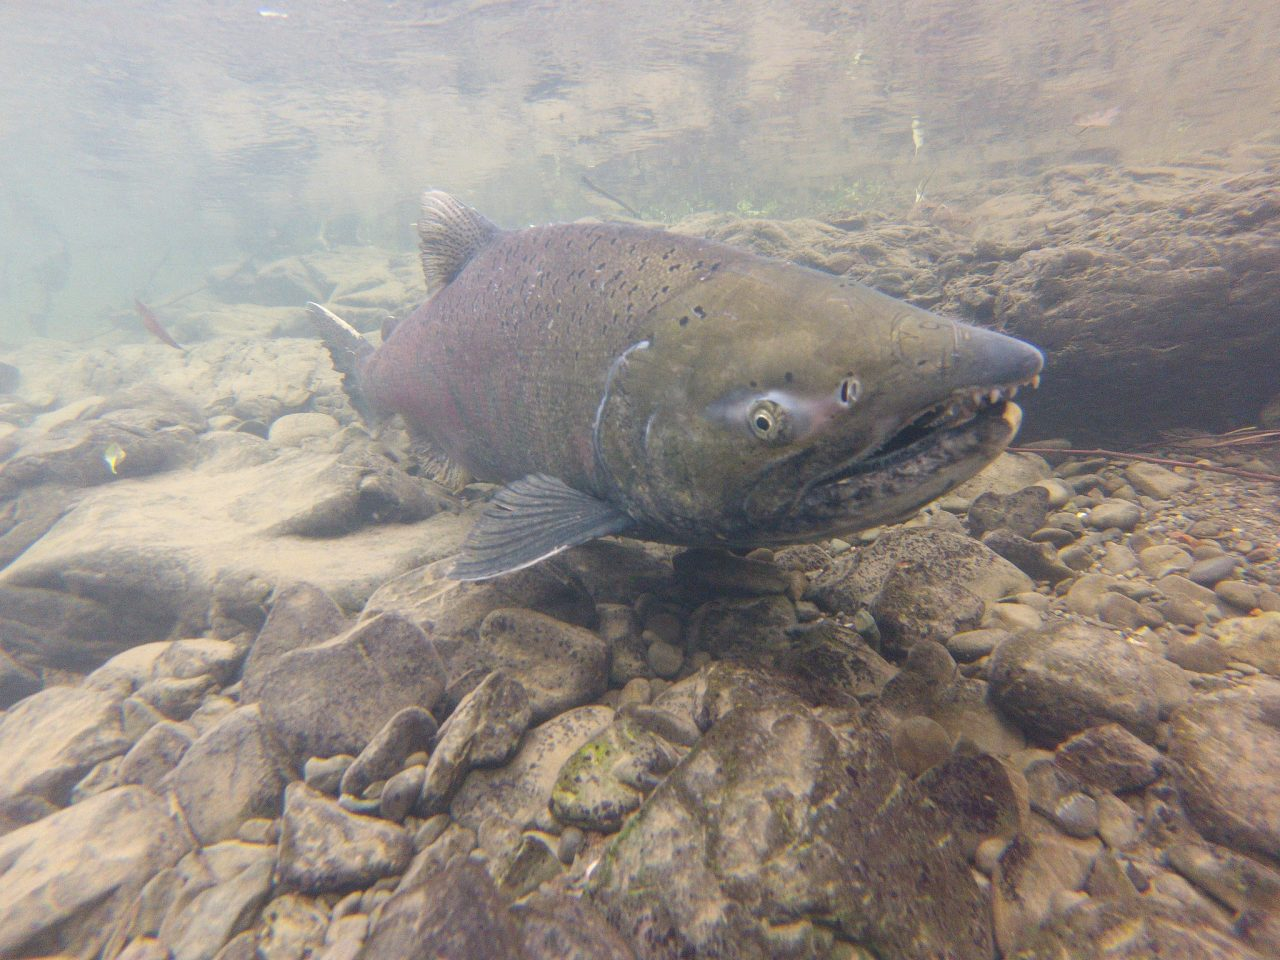 A male Chinook salmon returns from the Pacific to spawn. Photo via California Sea Grant/Flickr